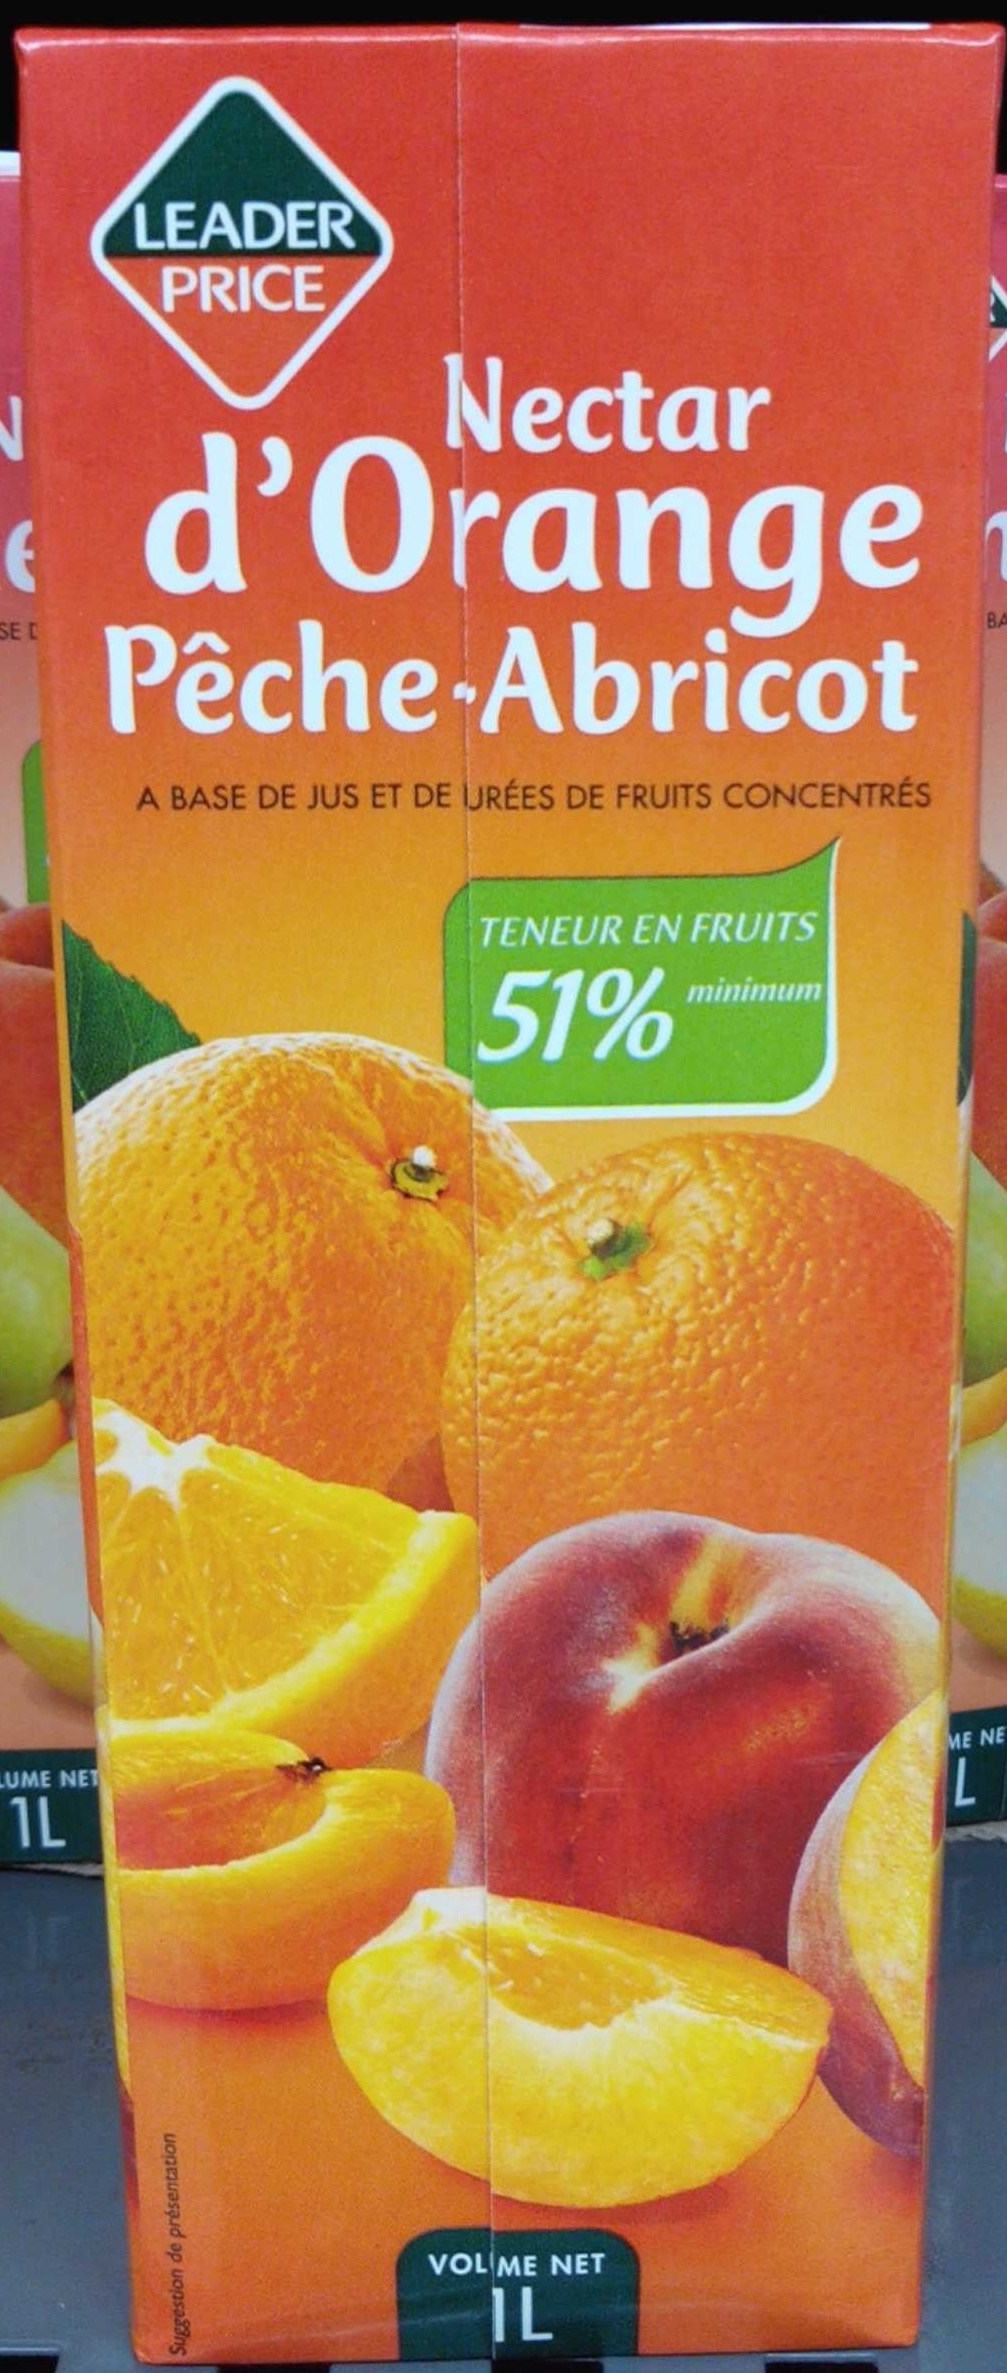 Nectar d'Orange Pêche-Abricot - Product